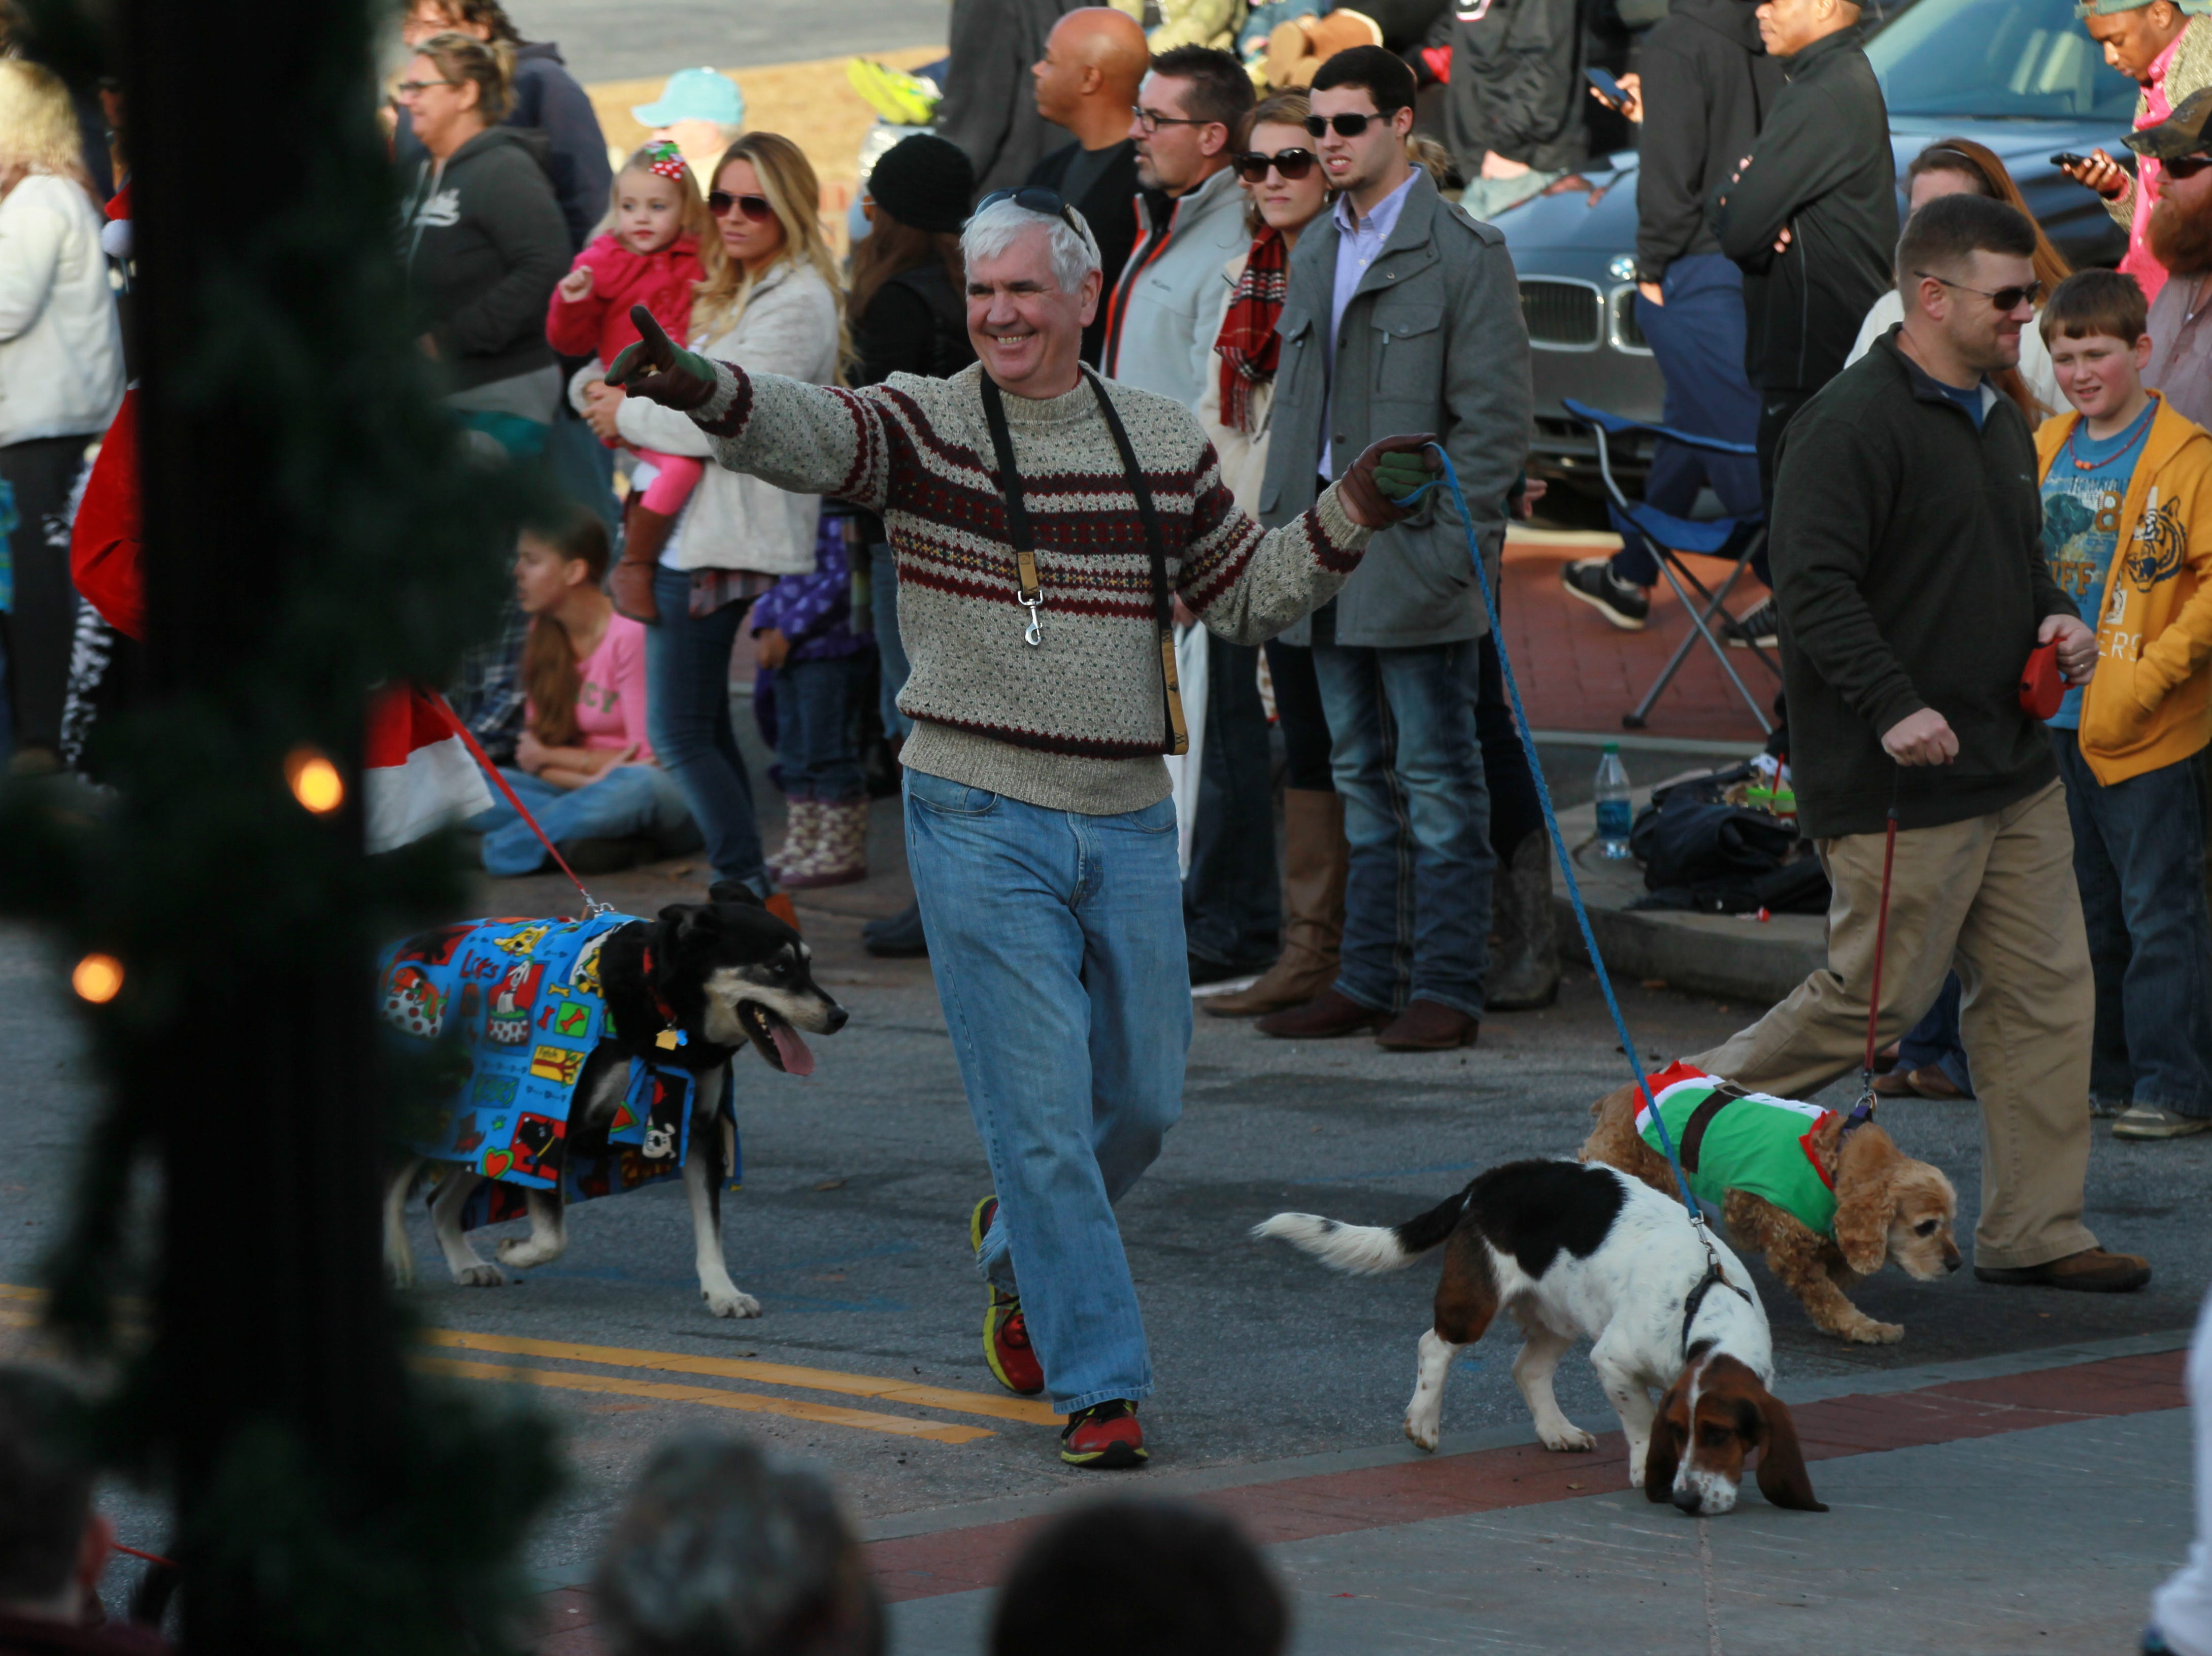 Dr. Marshall Meadors in the Anderson Christmas Parade in 2014